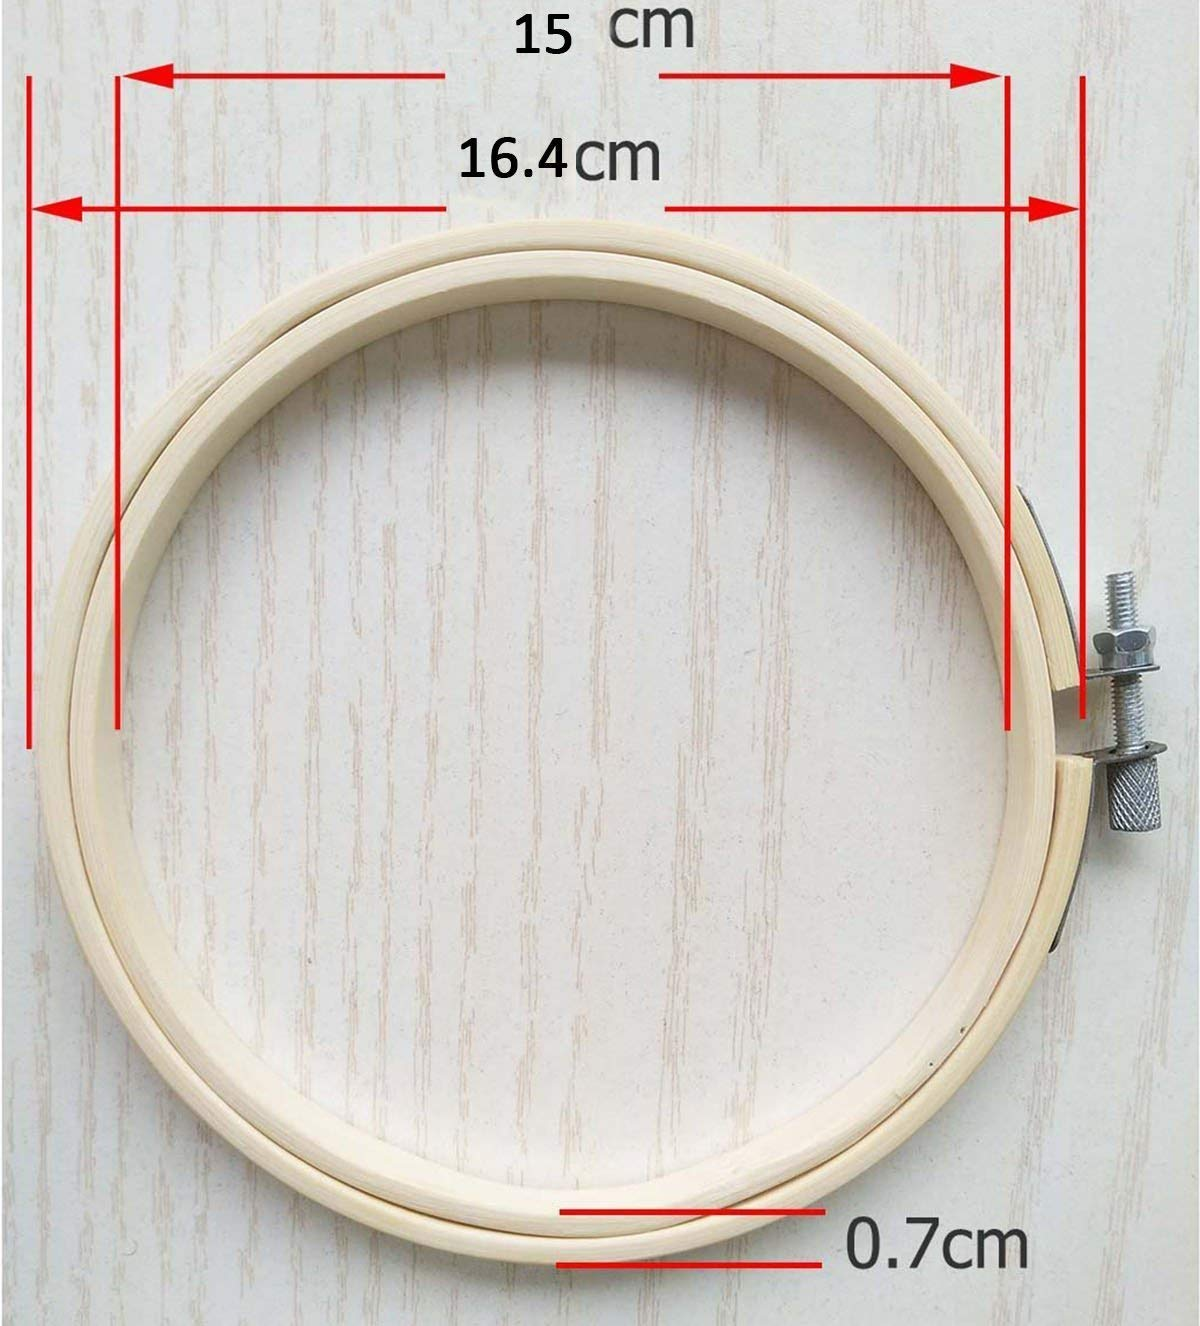 YXJD 10pc Stickrahmen aus Bambus Cross Stitch Hoop Ø 15cm Stickerei ...